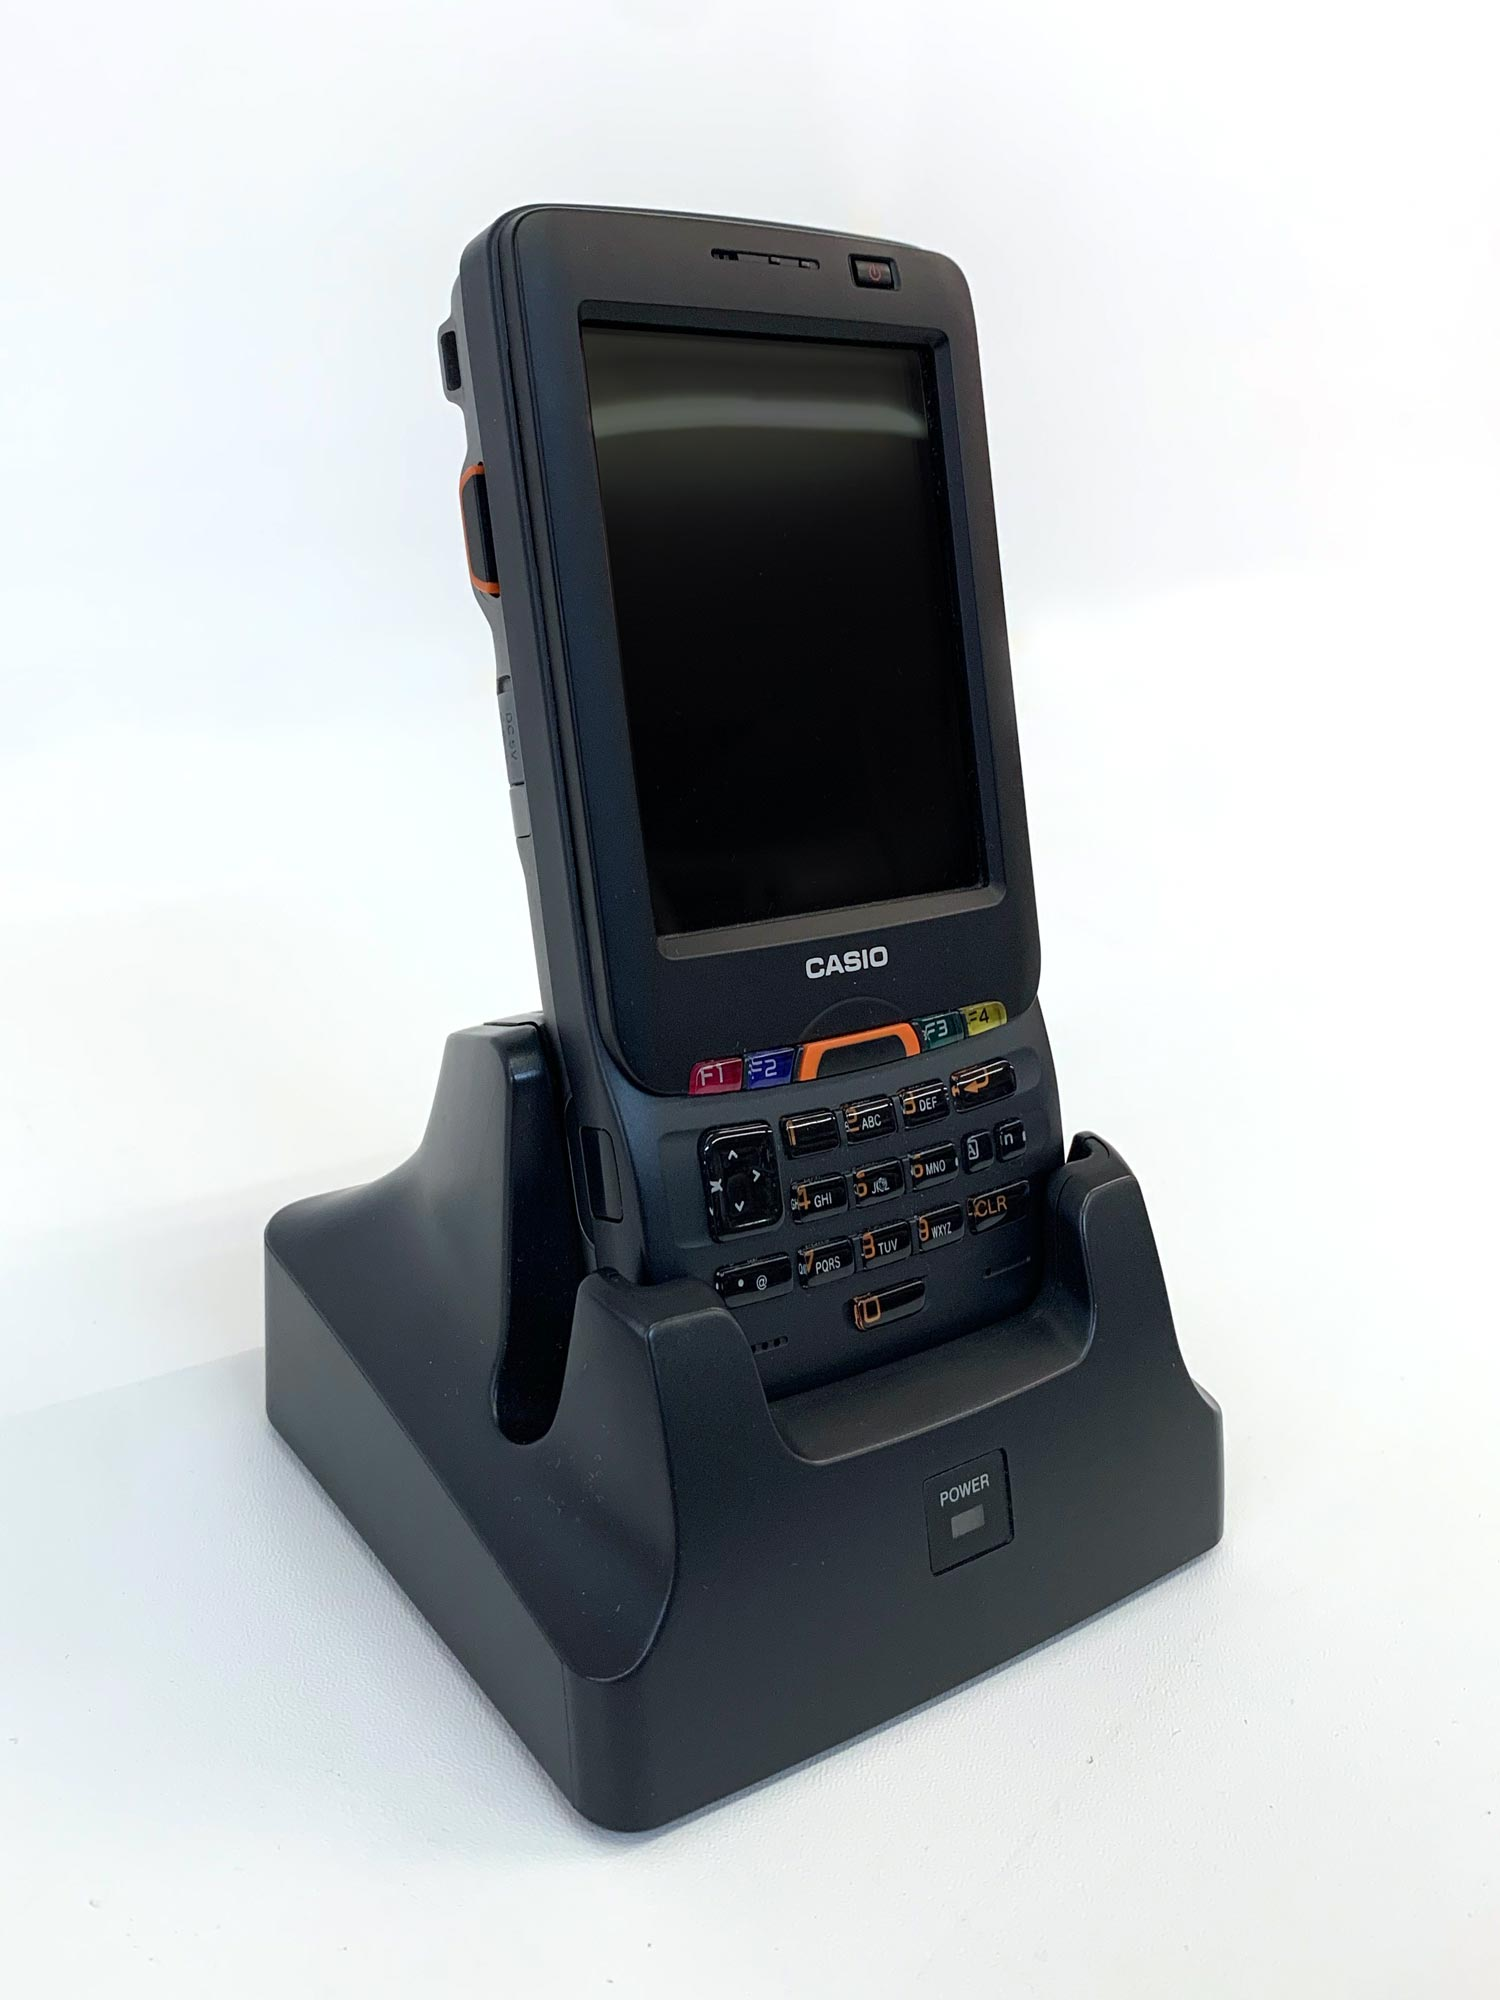 IT-800 - Industrie PDA